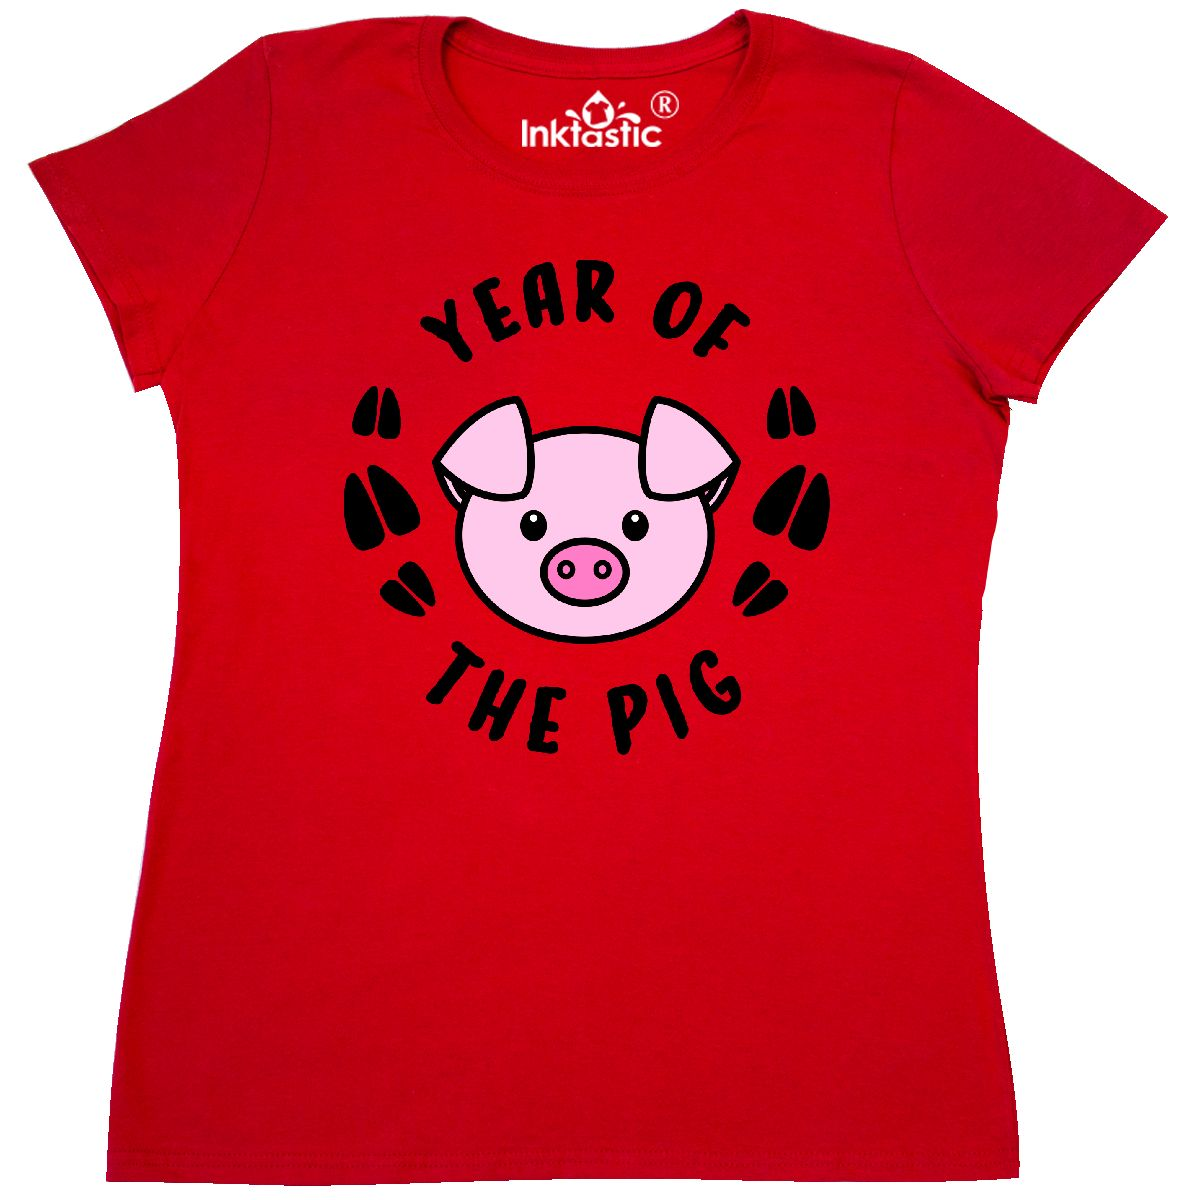 3c2e3f01 Inktastic Year Of The Pig Chinese Zodiac Women's T-Shirt 1959 2019 ...